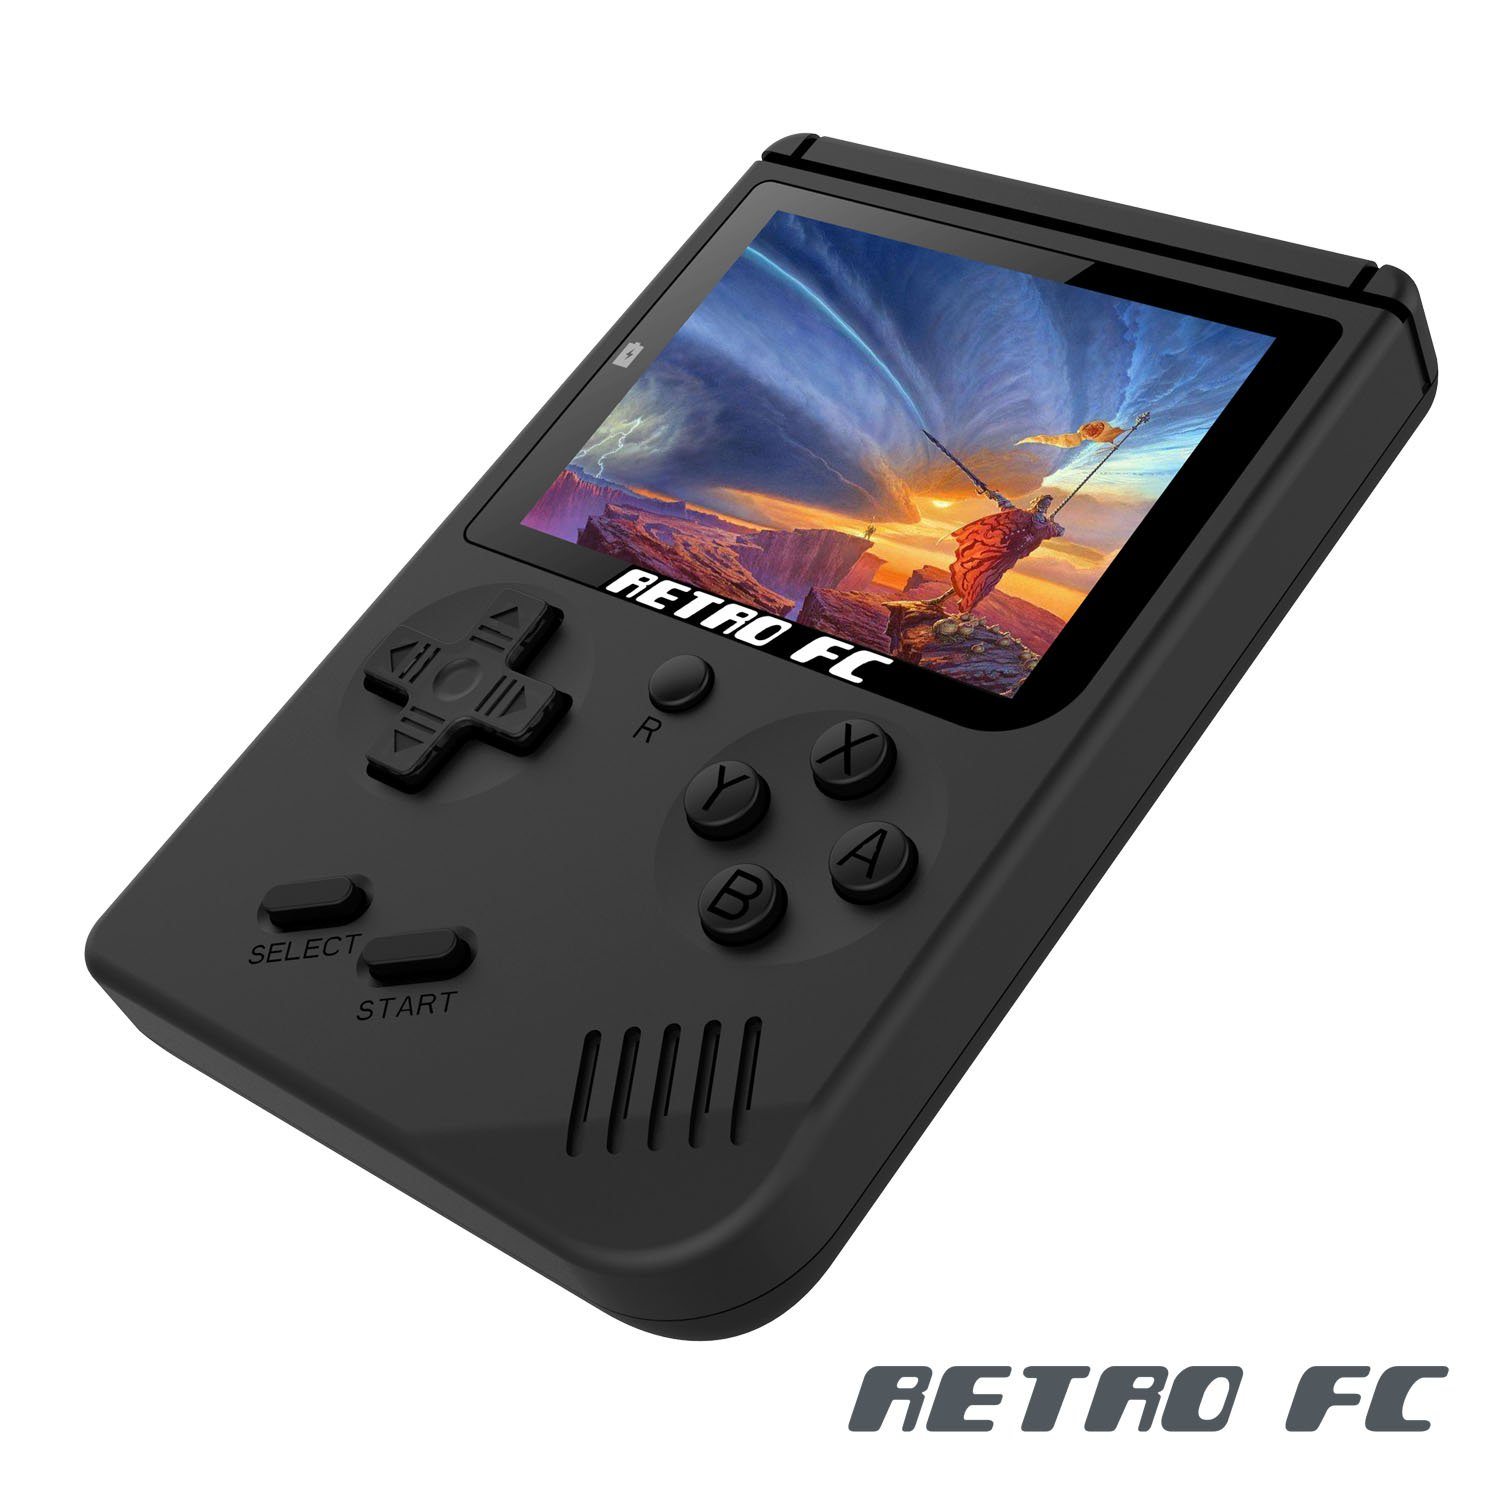 Anbernic Handheld Game Console, Game Console 3 Inch 168 Games Retro FC Game Player Classic Game Console 1 USB Charge, Birthday Presents for Children - Black